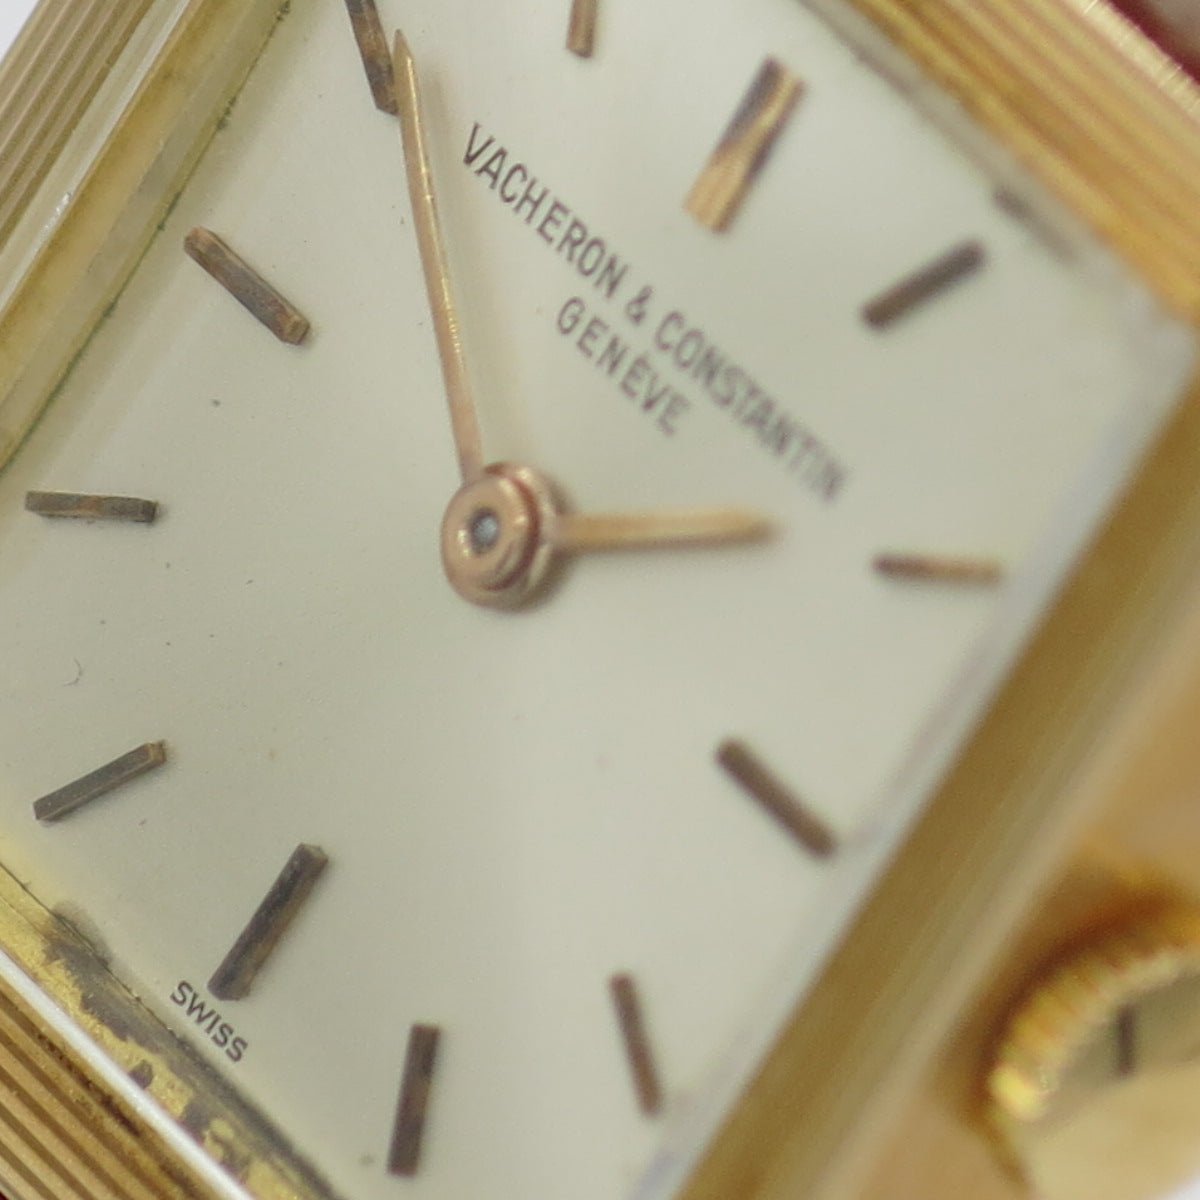 Vacheron Constantin lady wristwatch in 18 kt yellow gold